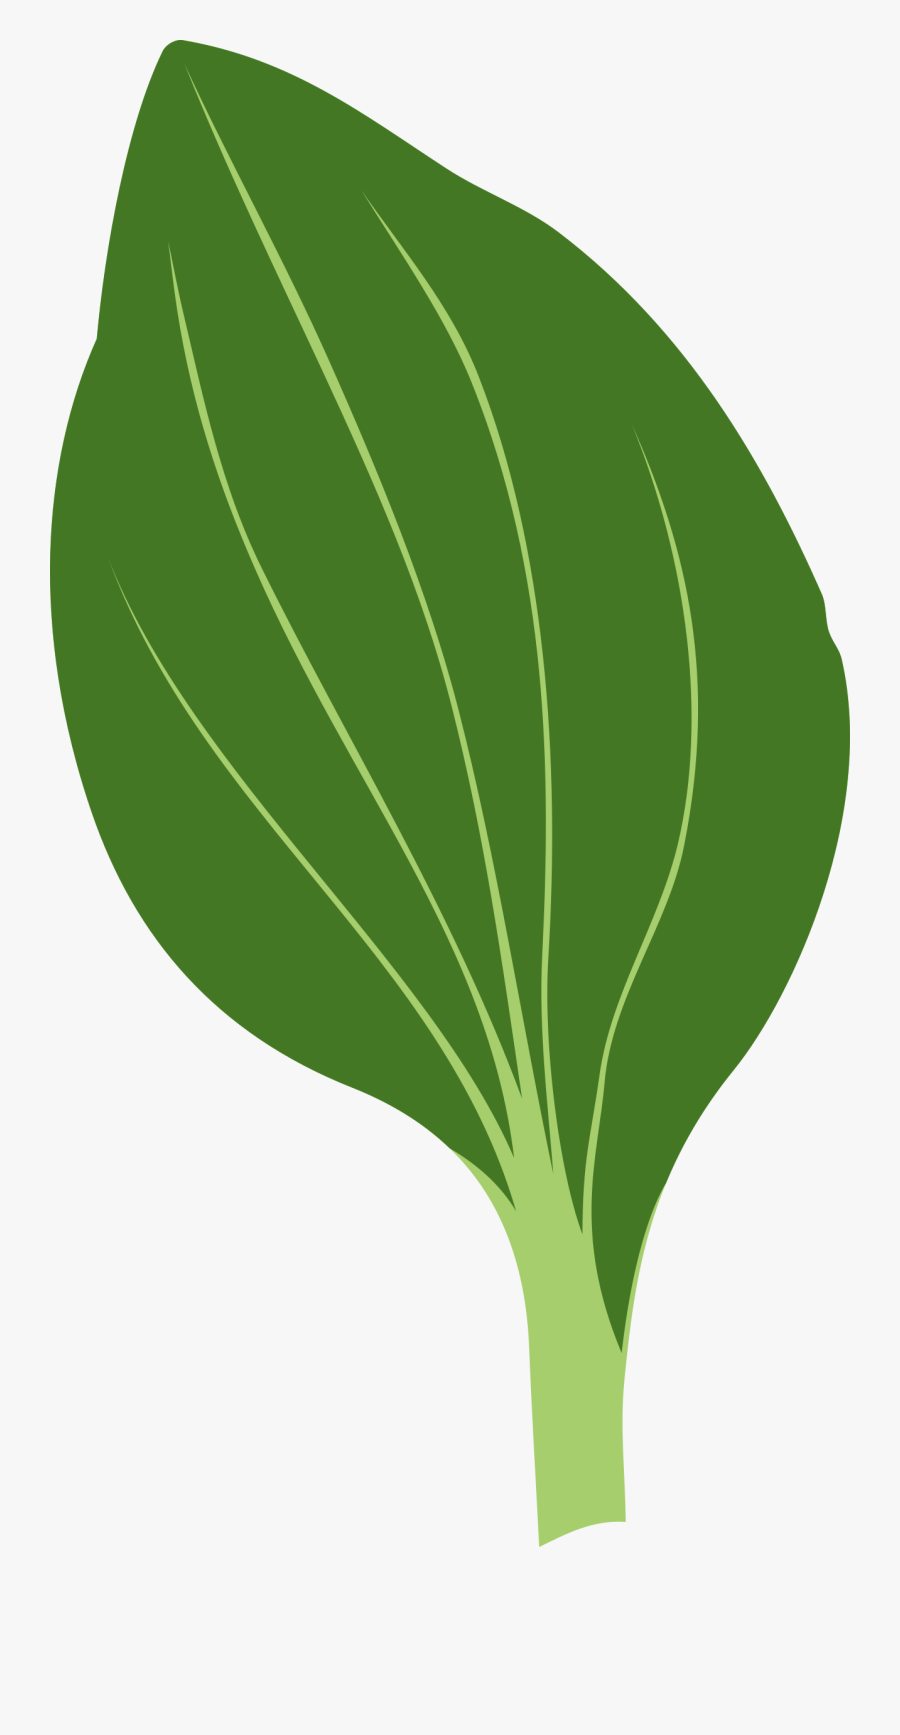 Plantago Clip Arts - Green Leaf To Draw, Transparent Clipart